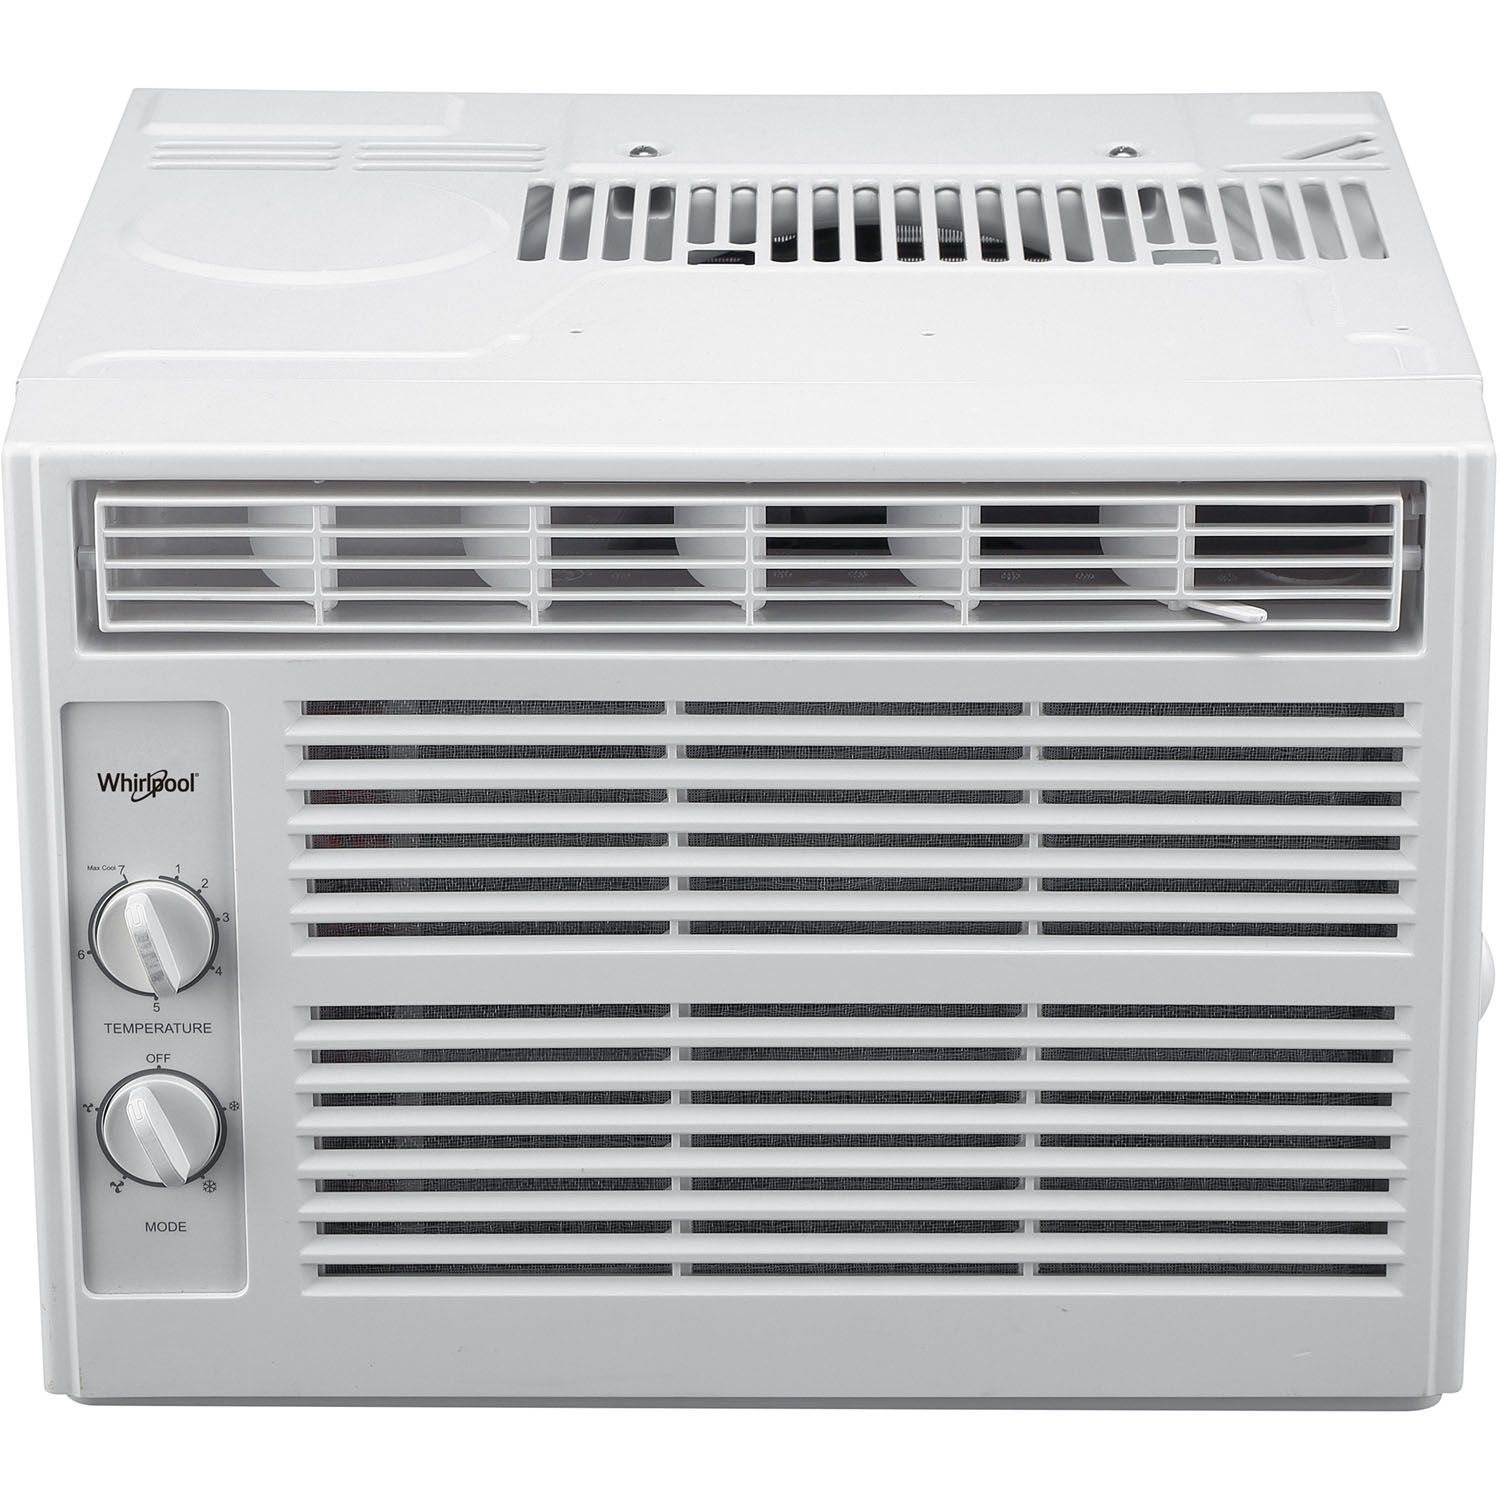 Whirlpool WHAW050BW 5,000 BTU 115V Window-Mounted Air Conditioner with Mechanical Controls